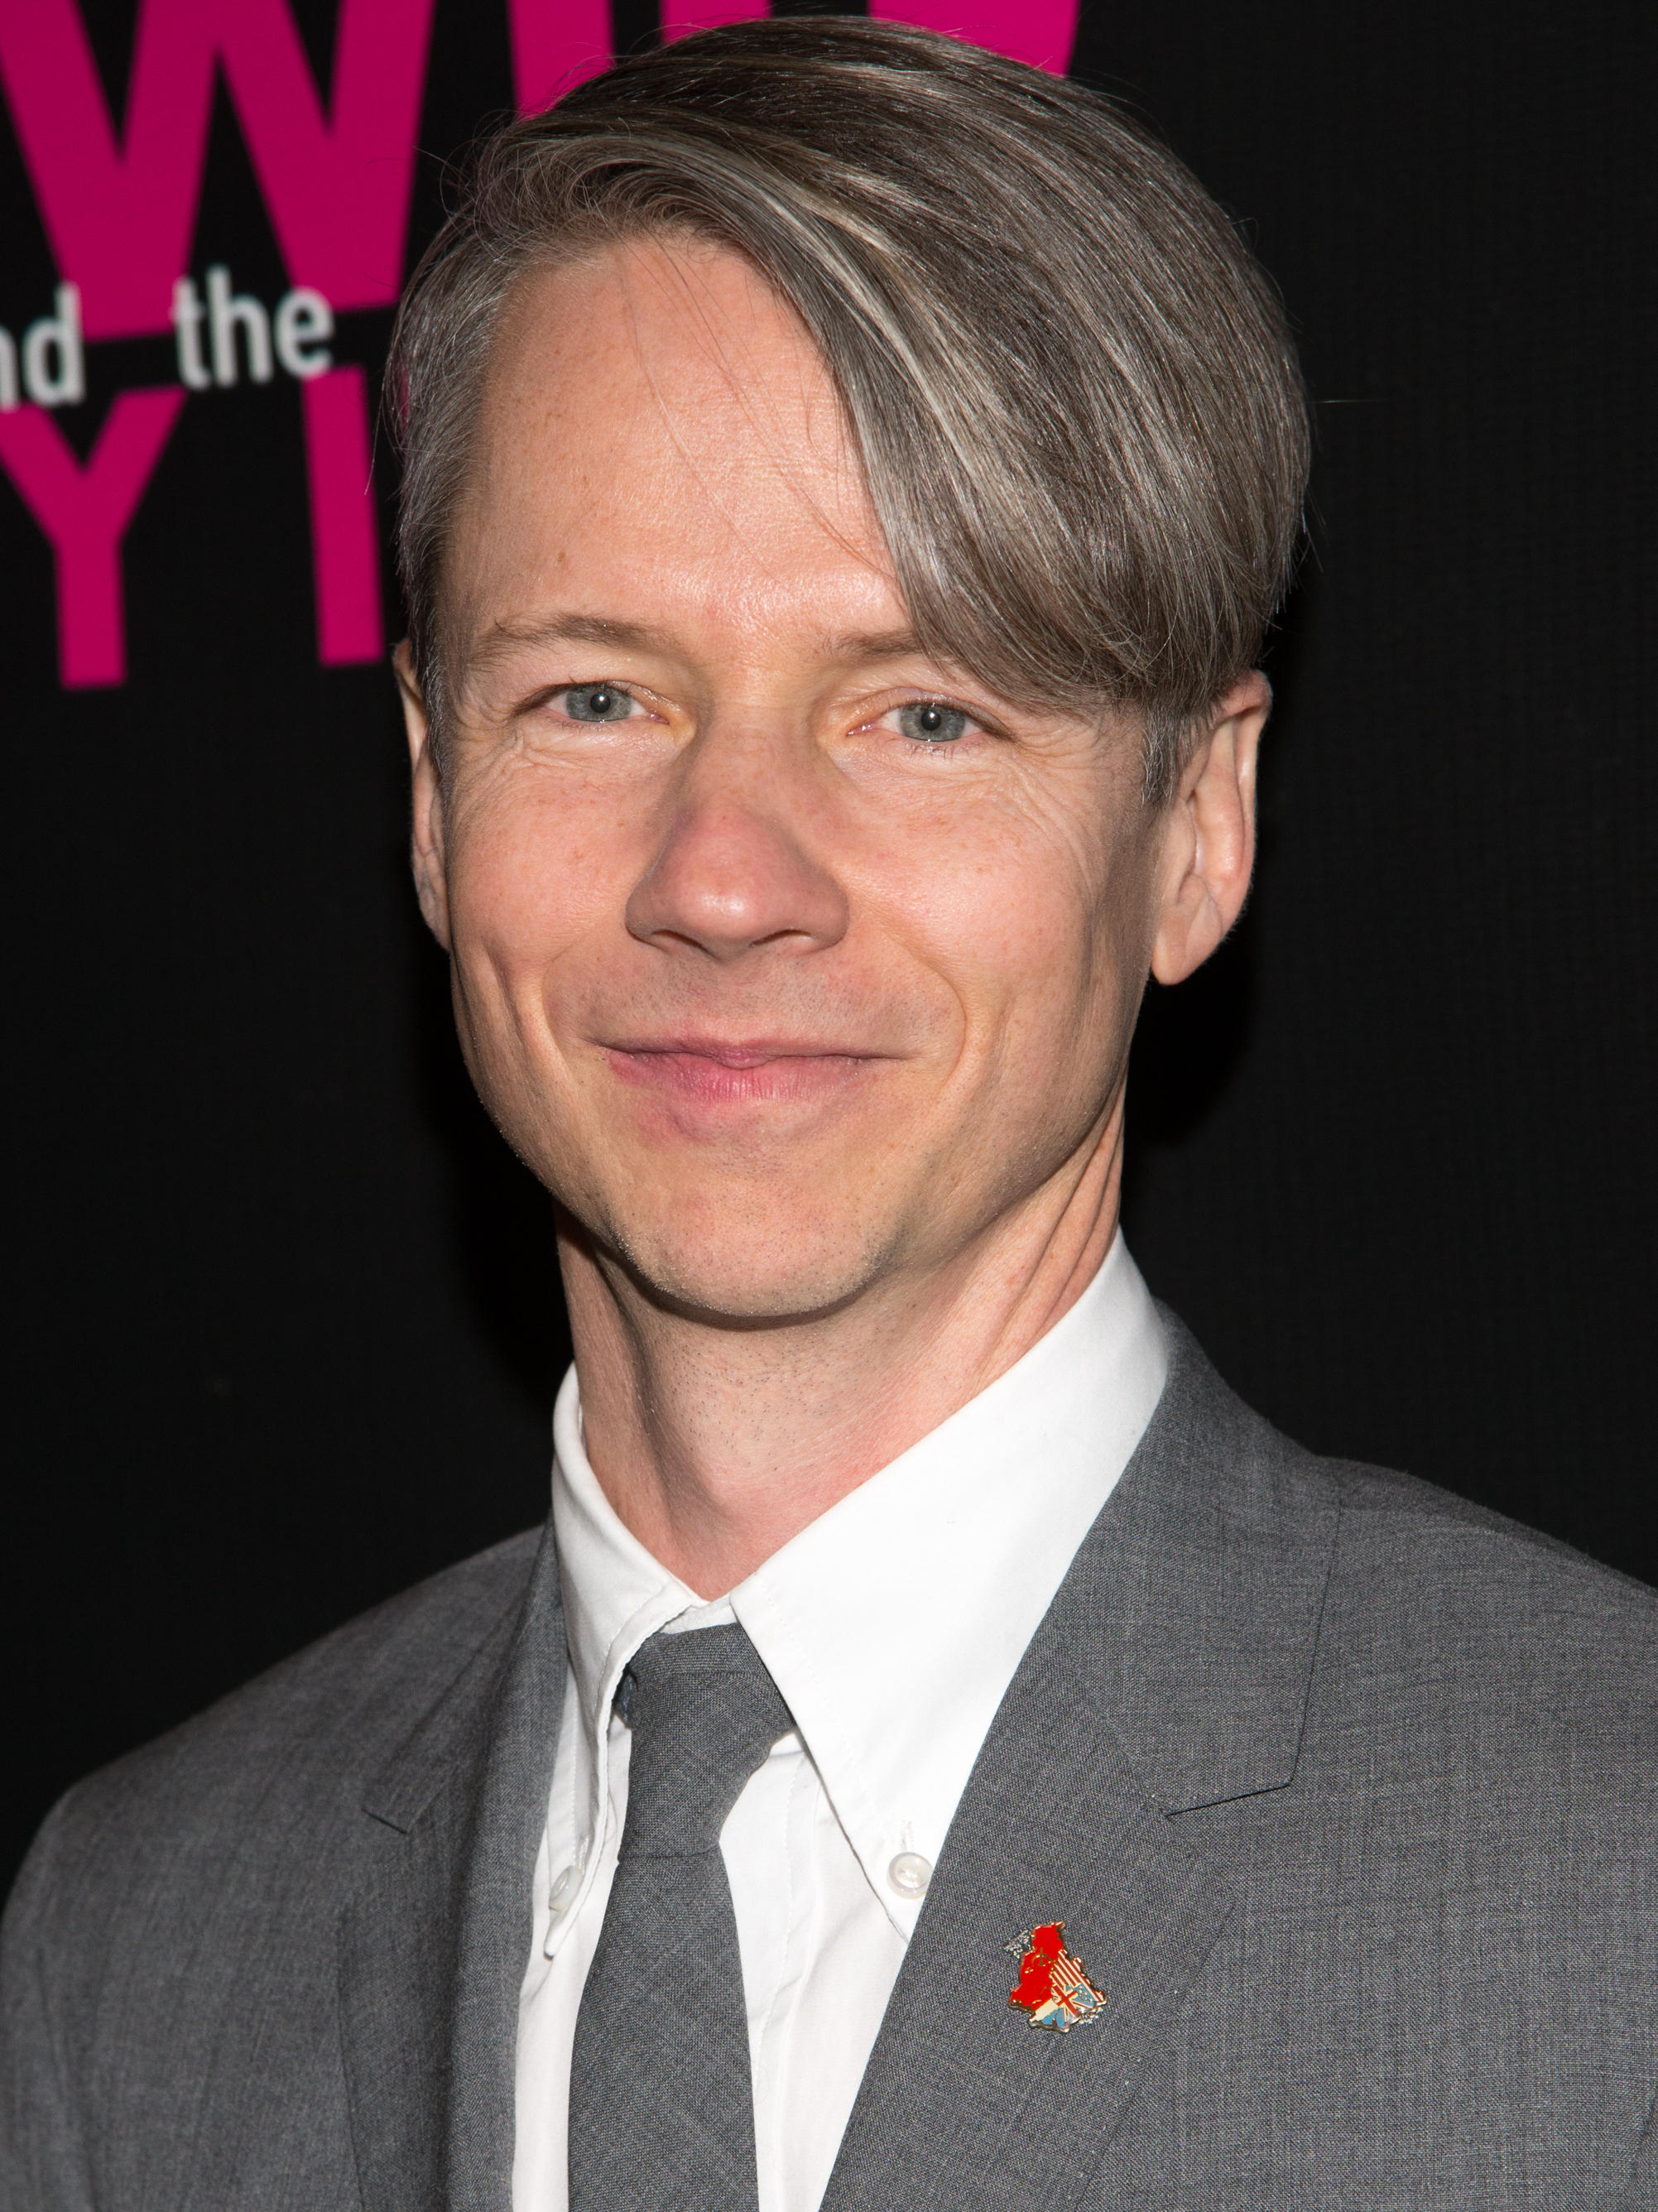 john cameron mitchell married